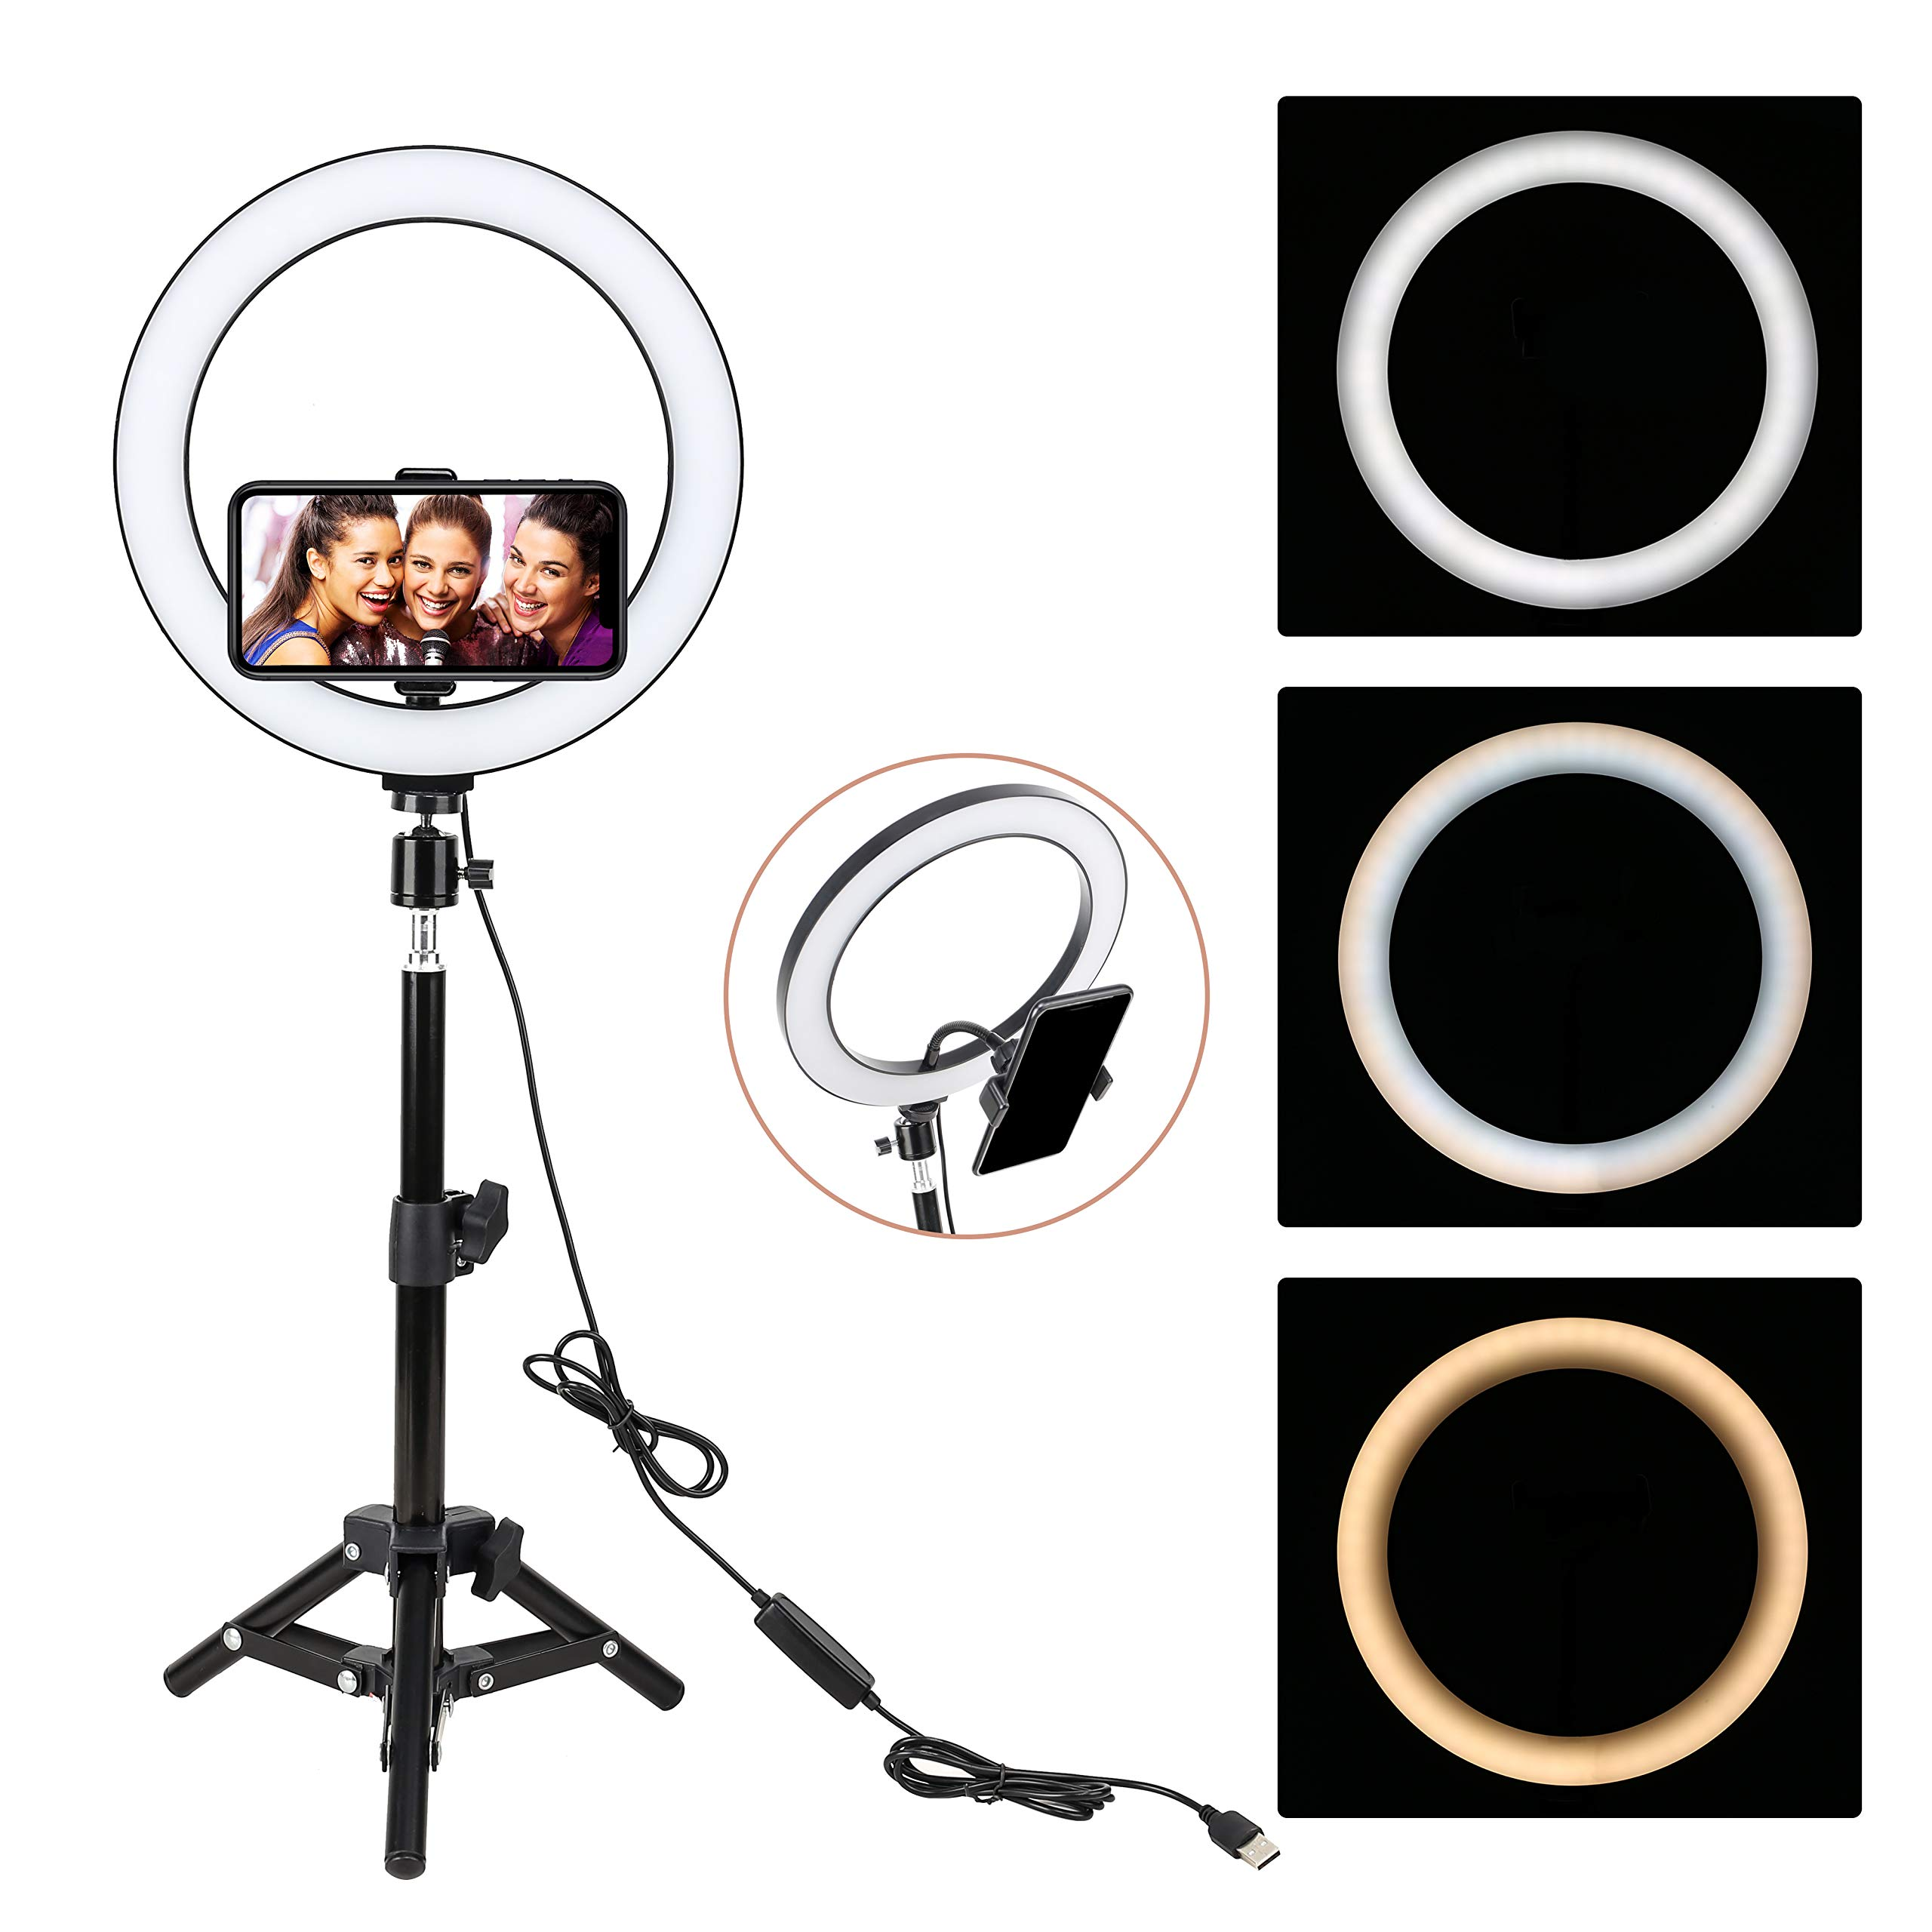 ZoMei 10'' Selfie LED Ring Light with Tripod Stand &Cell Phone Holder for Live Stream/Makeup/YouTube Video,Dimmable Beauty Mini Camera Photography Ringlight for iPhone Xs Max XR Android